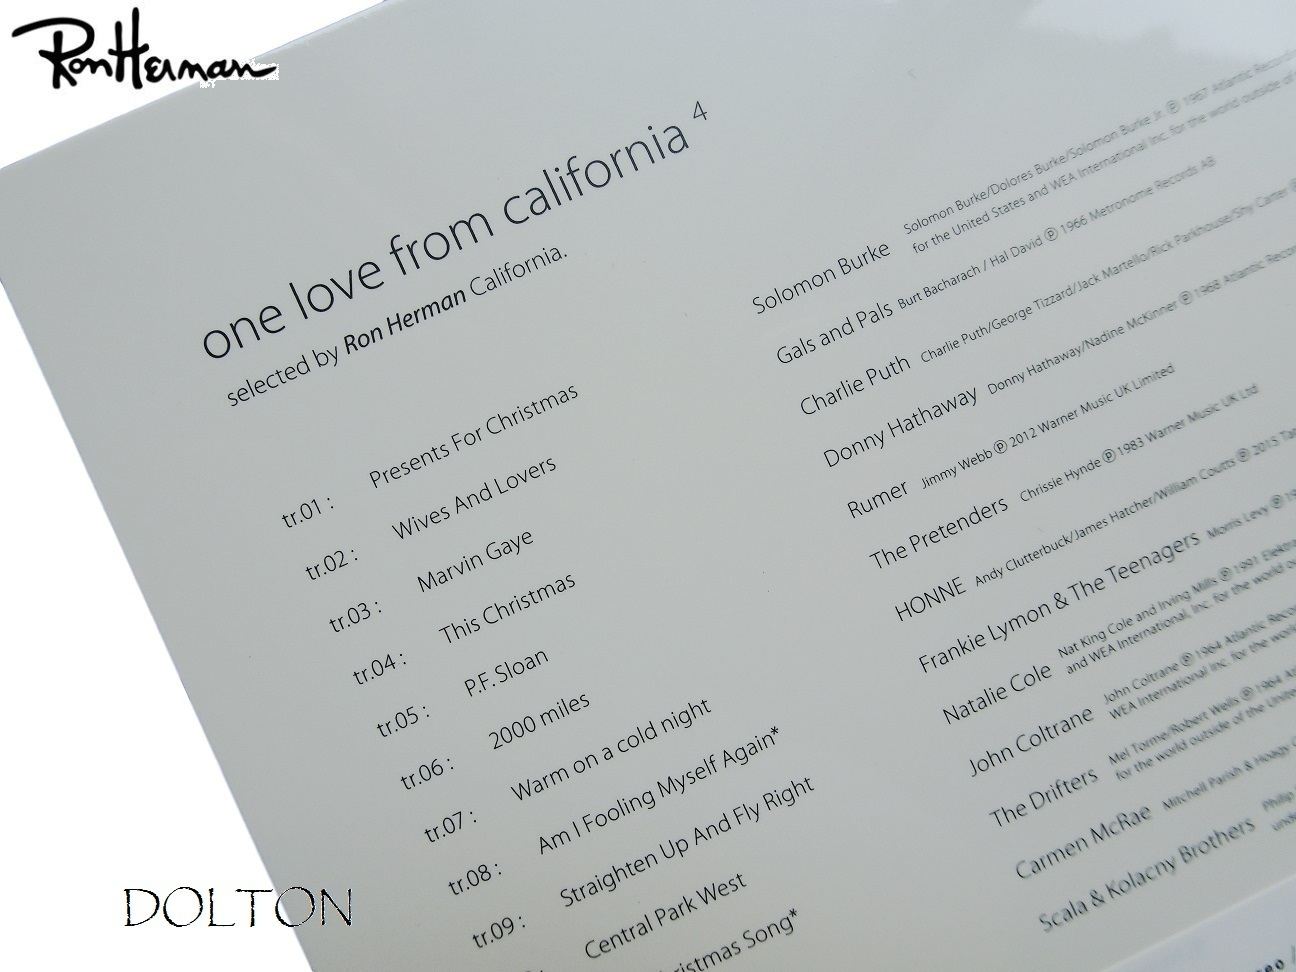 ロンハーマン・CD・One Love from California 4